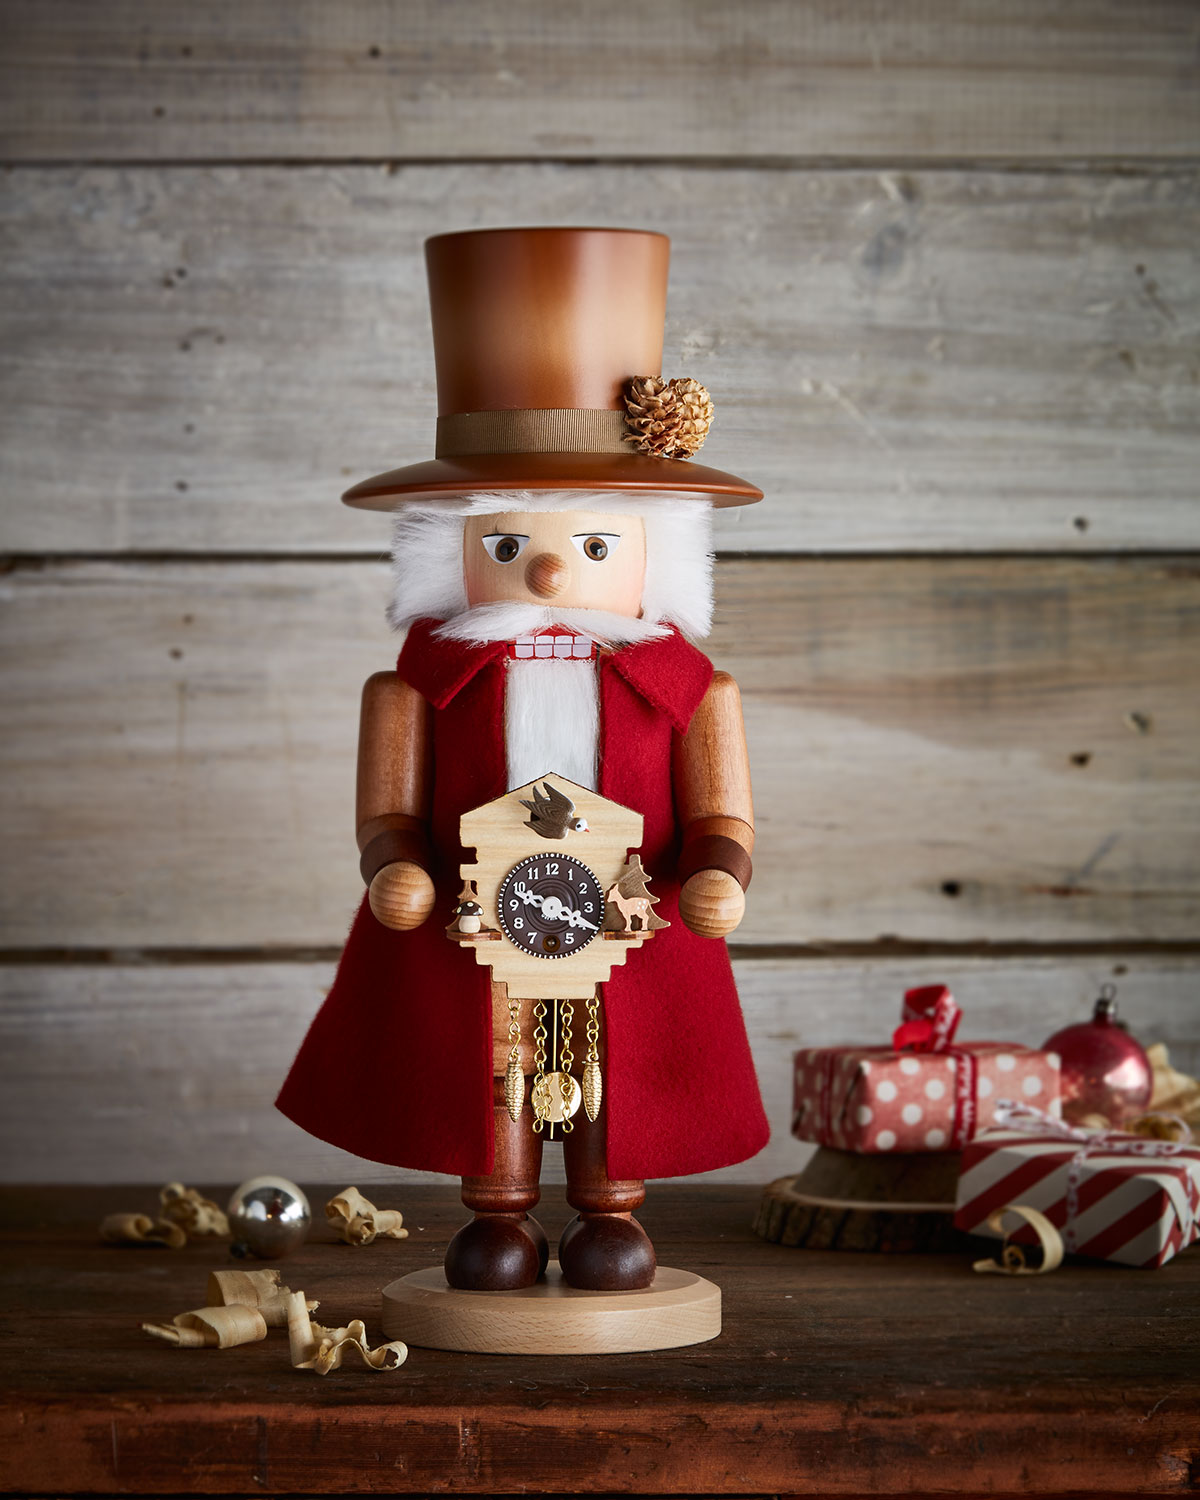 Wooden Clockmaker Nutcracker